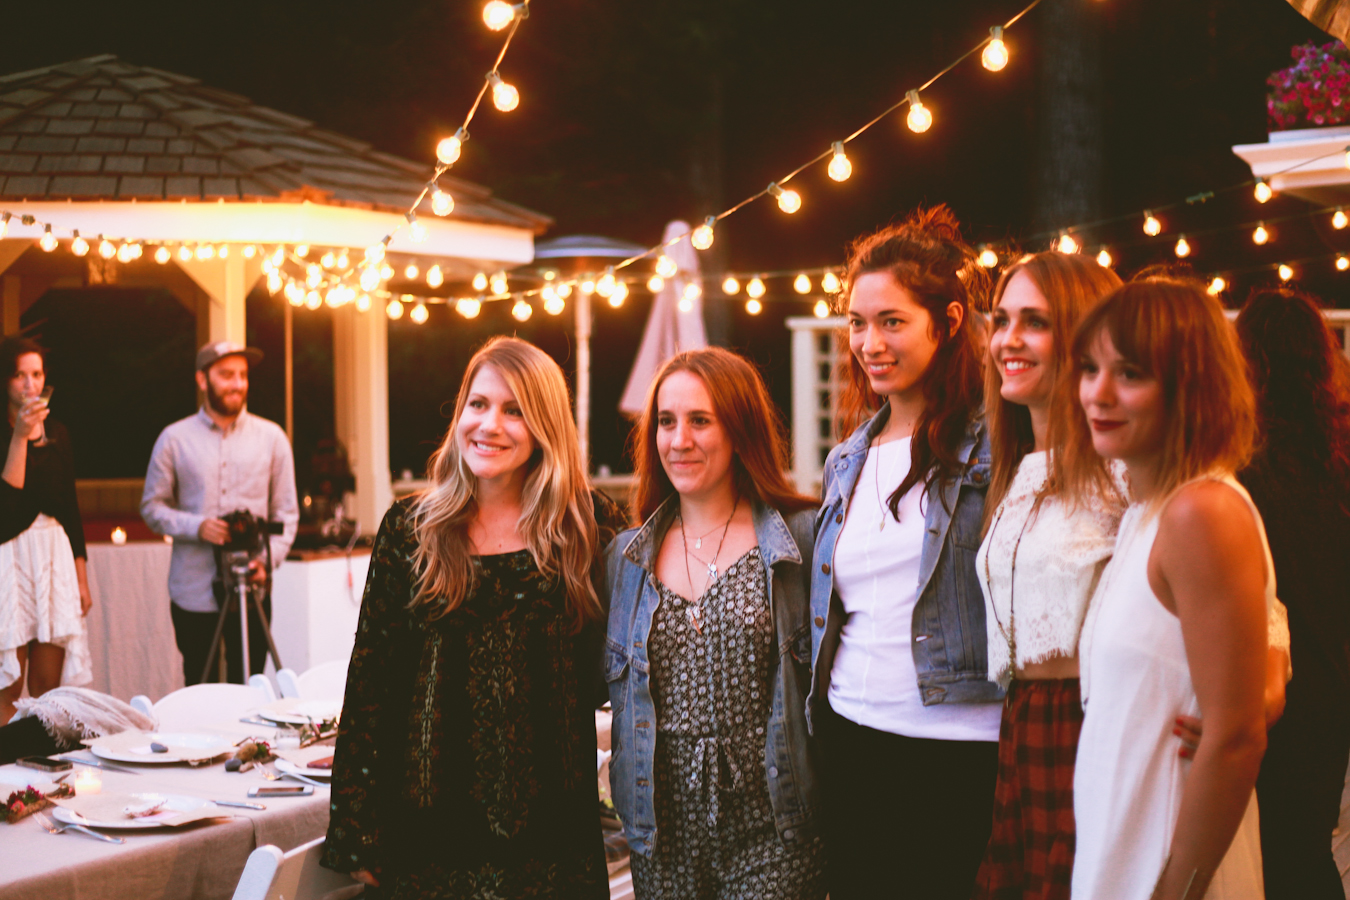 Jessica ,  Naomi ,  Jules , Shelly, and  Nikki  - Free People (What lovely ladies hey?!)